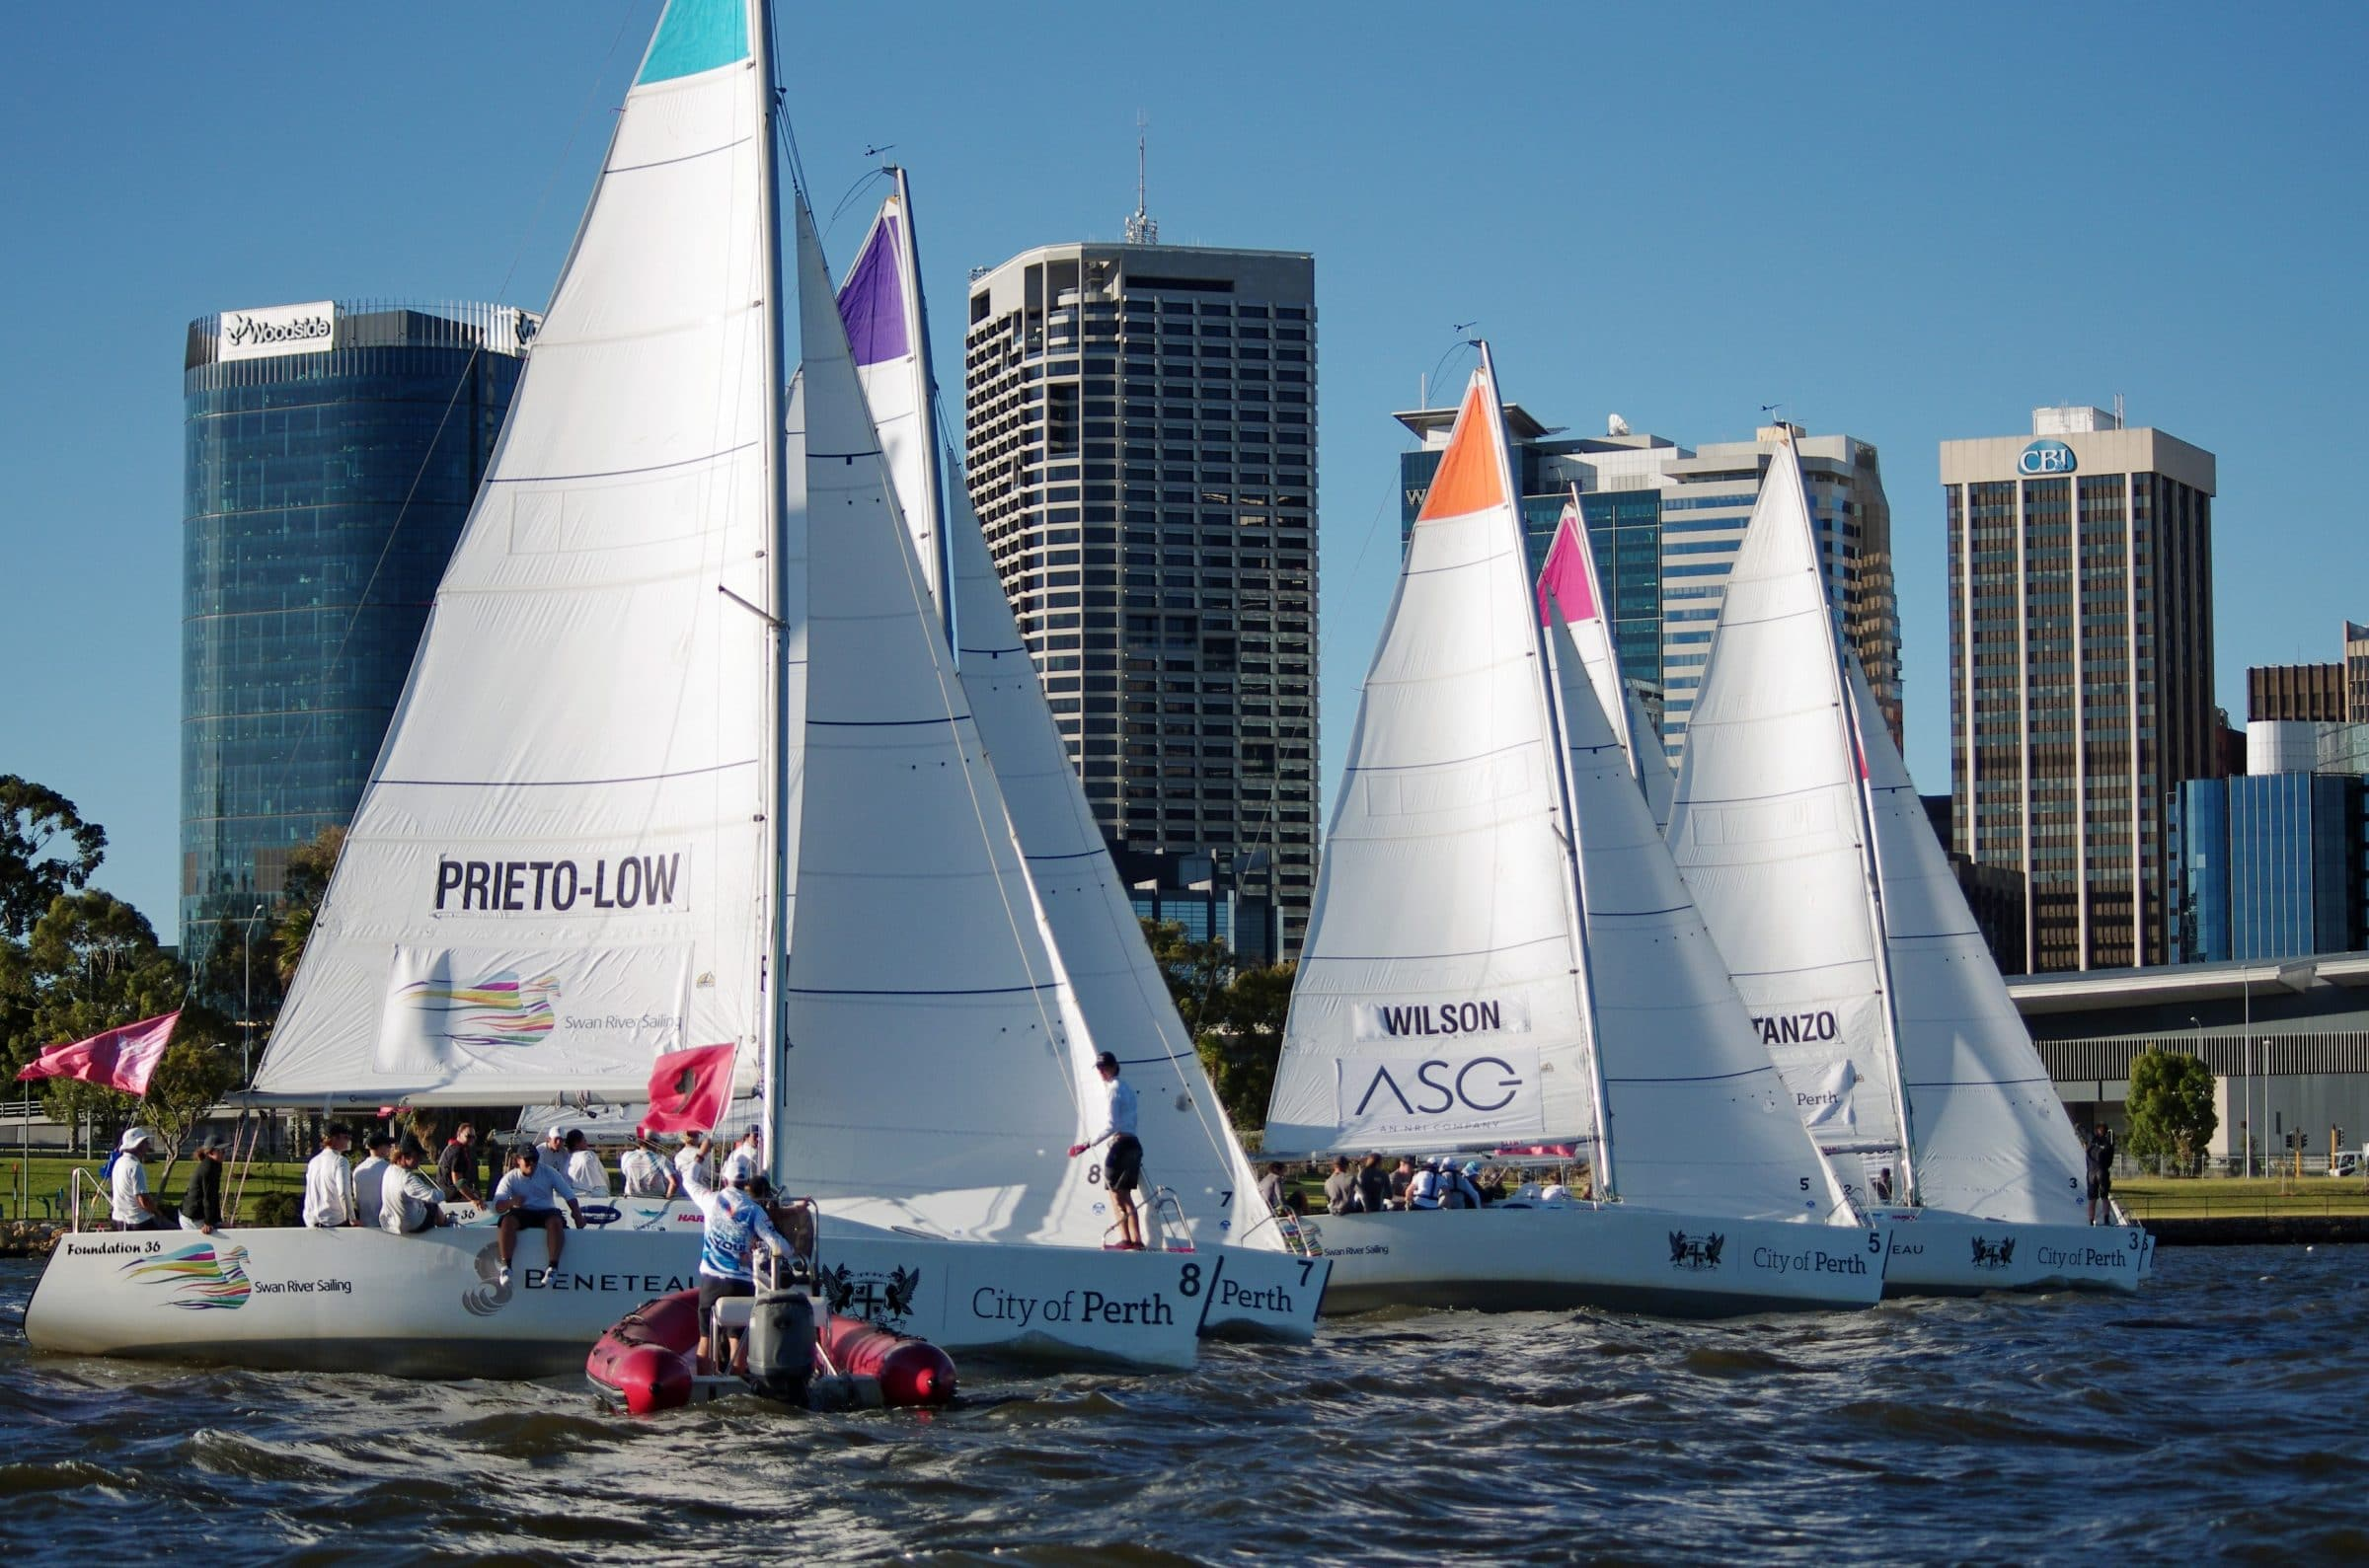 City of Perth Festival of Sail Sponsor's Race